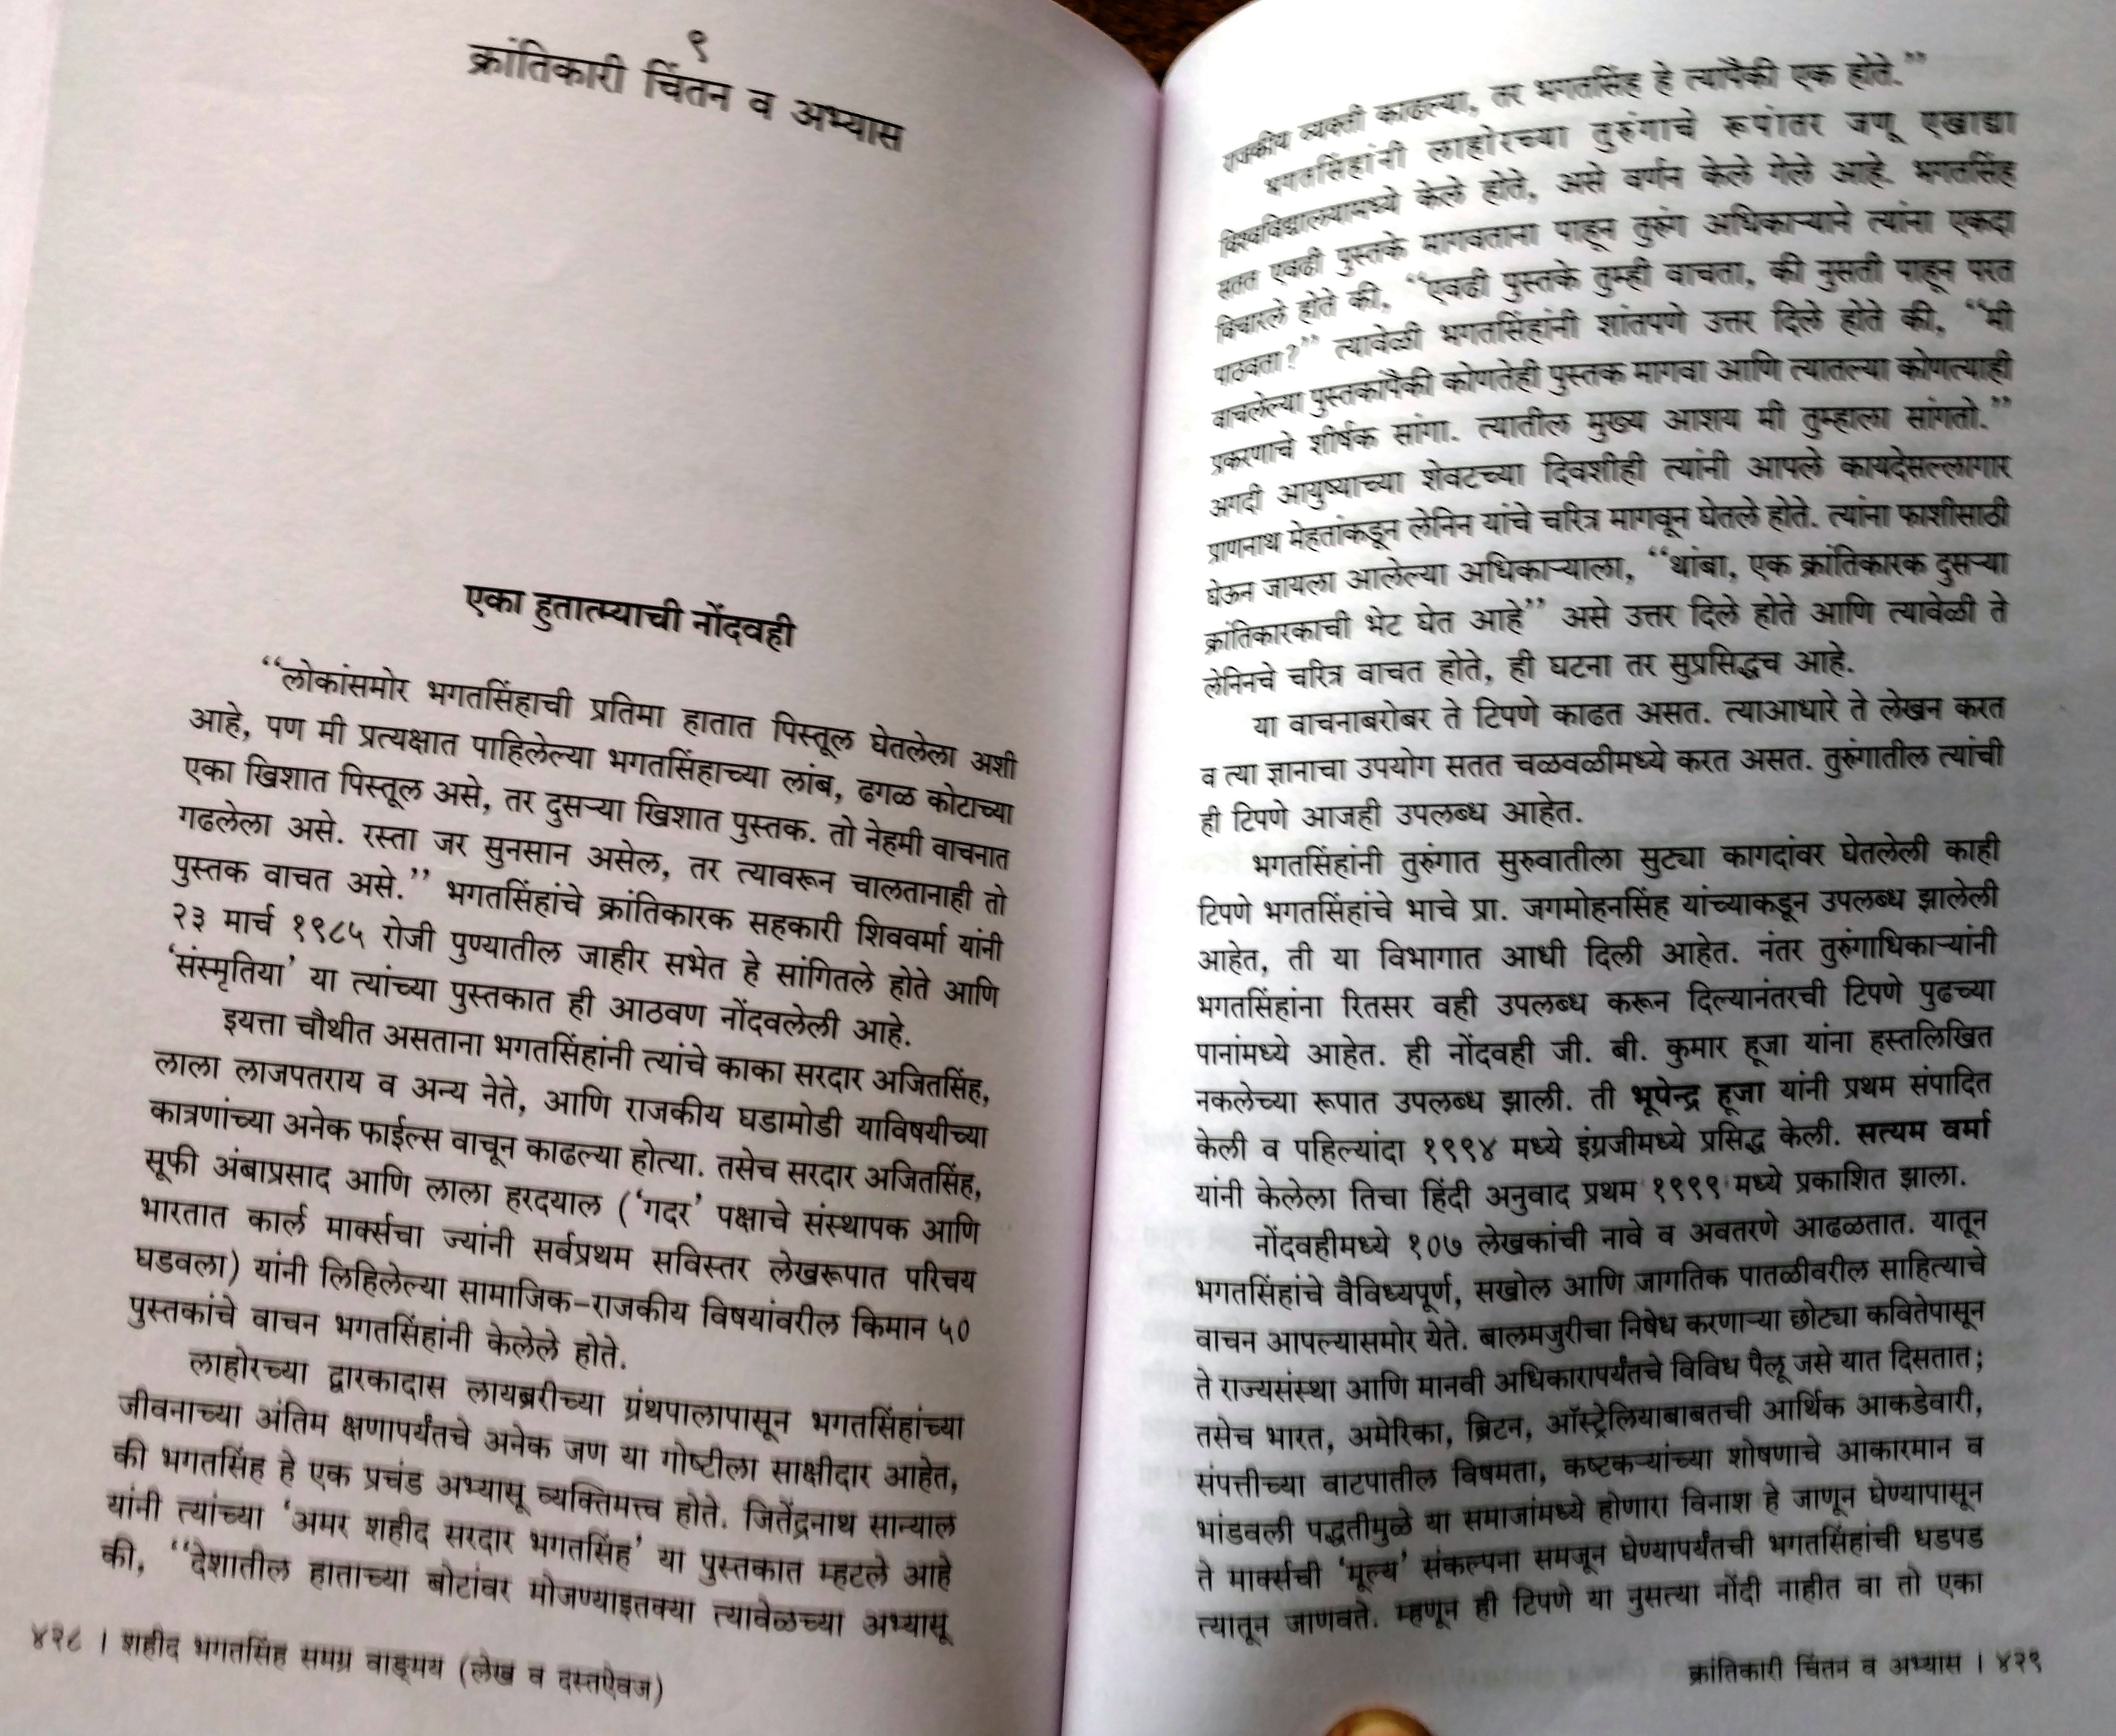 002 Different Editions Of Bhagat Singh Jail Note Book Marathi Essay Example On Unique In Short 100 Words Full